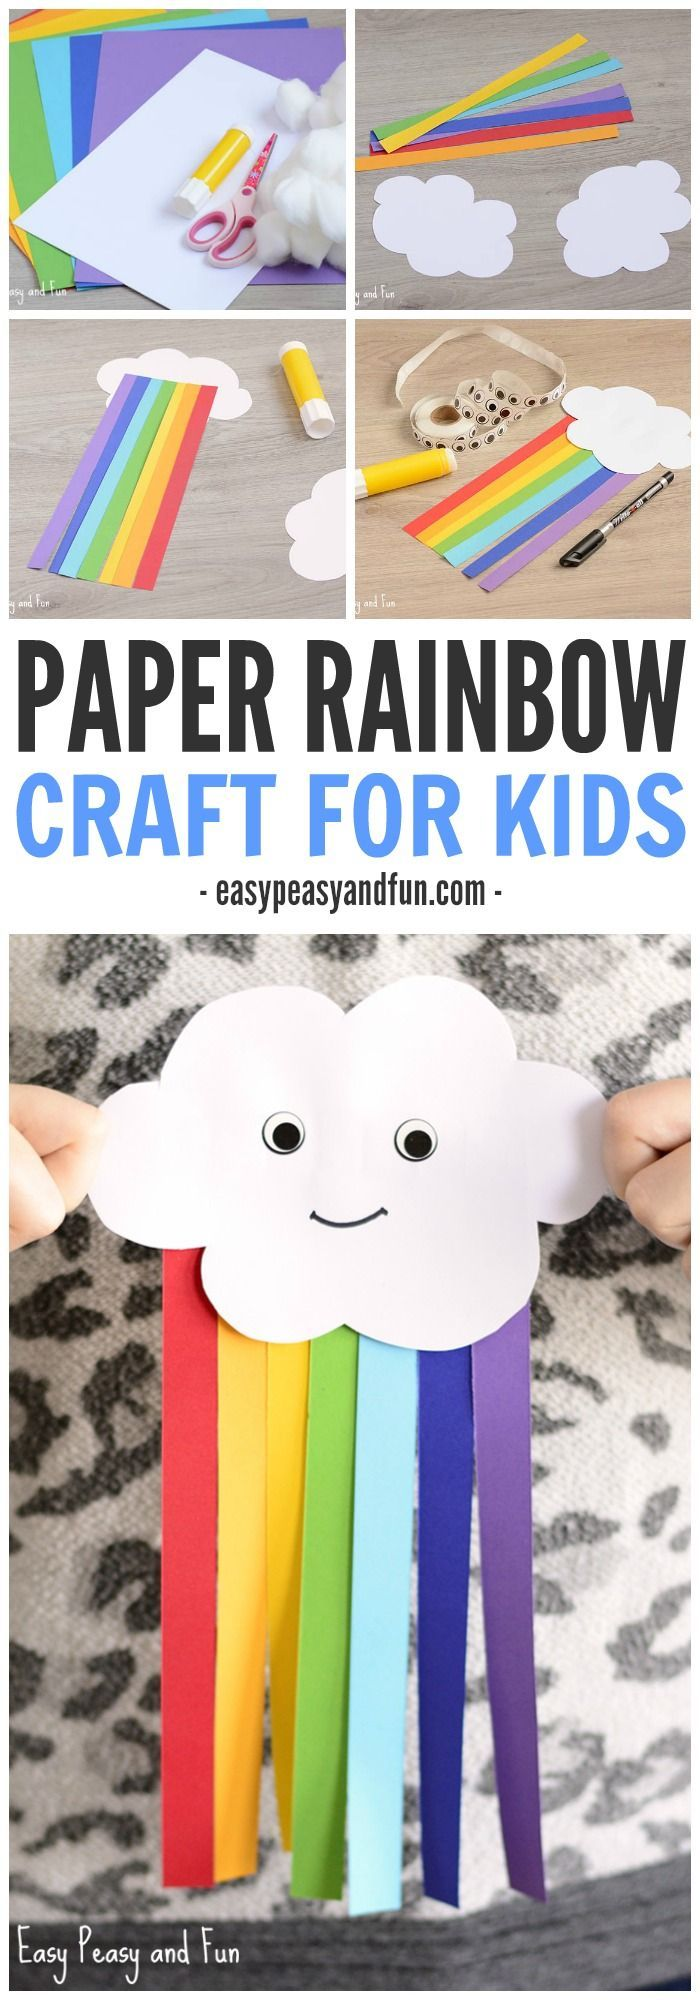 Mr. Happy cloud is here to play! This sweet cloud and paper rainbow craft for kids is a great spring project